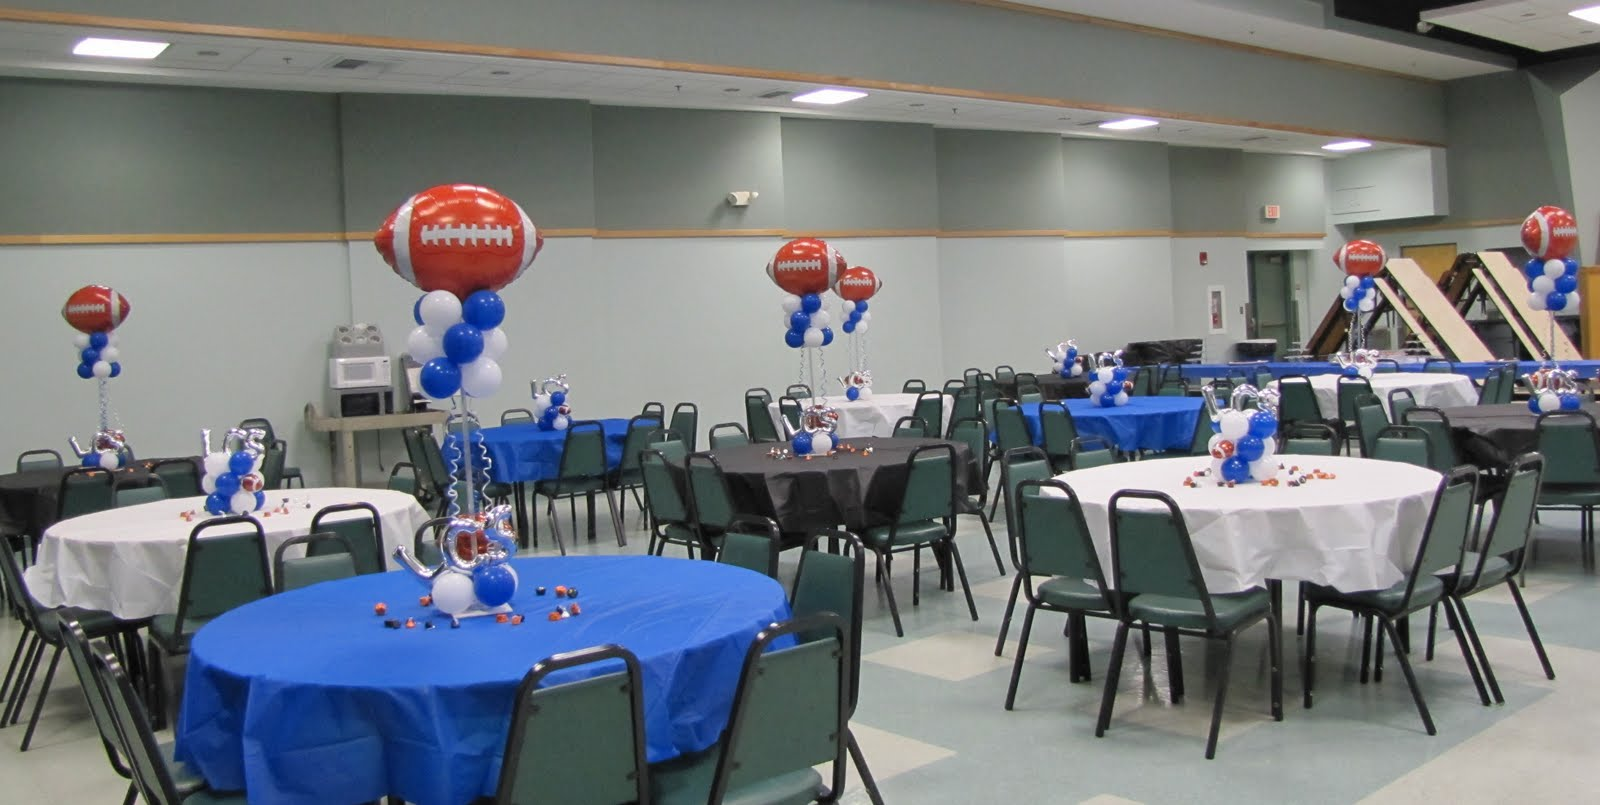 Party people event decorating company football banquet